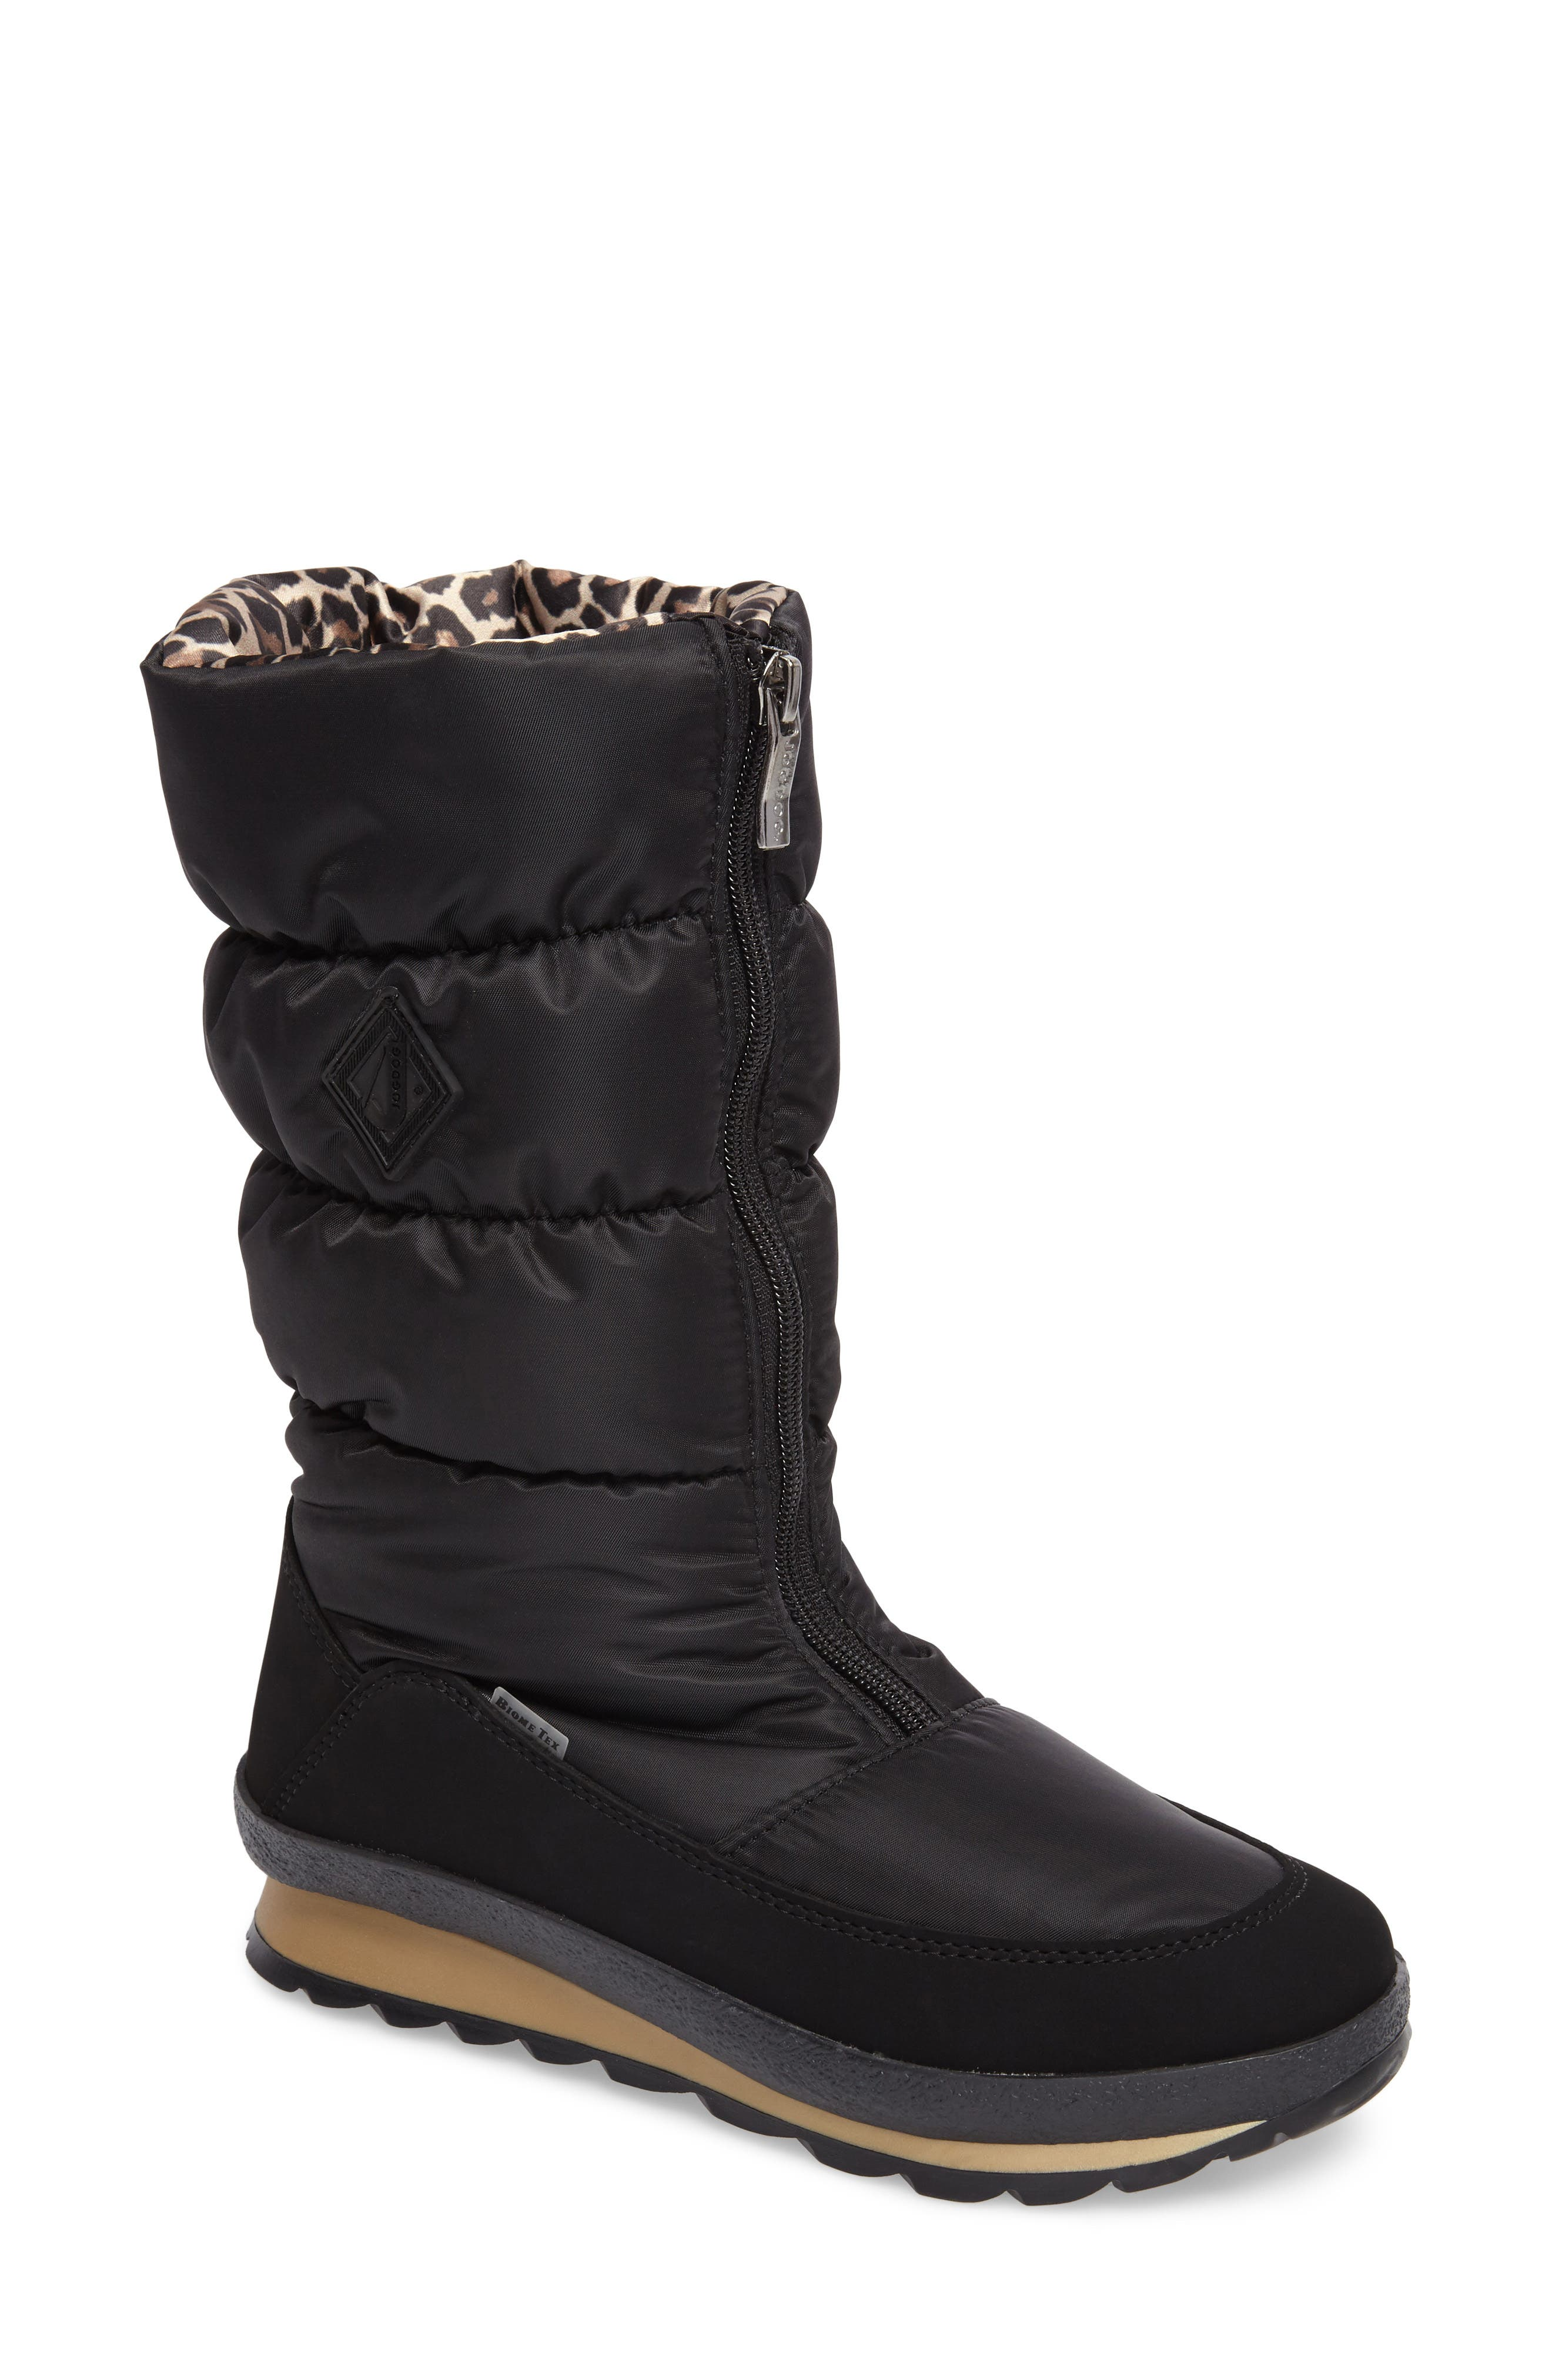 Cervina Waterproof Zip-Up Channel Quilted Boot,                             Main thumbnail 1, color,                             Black Leopard Nylon